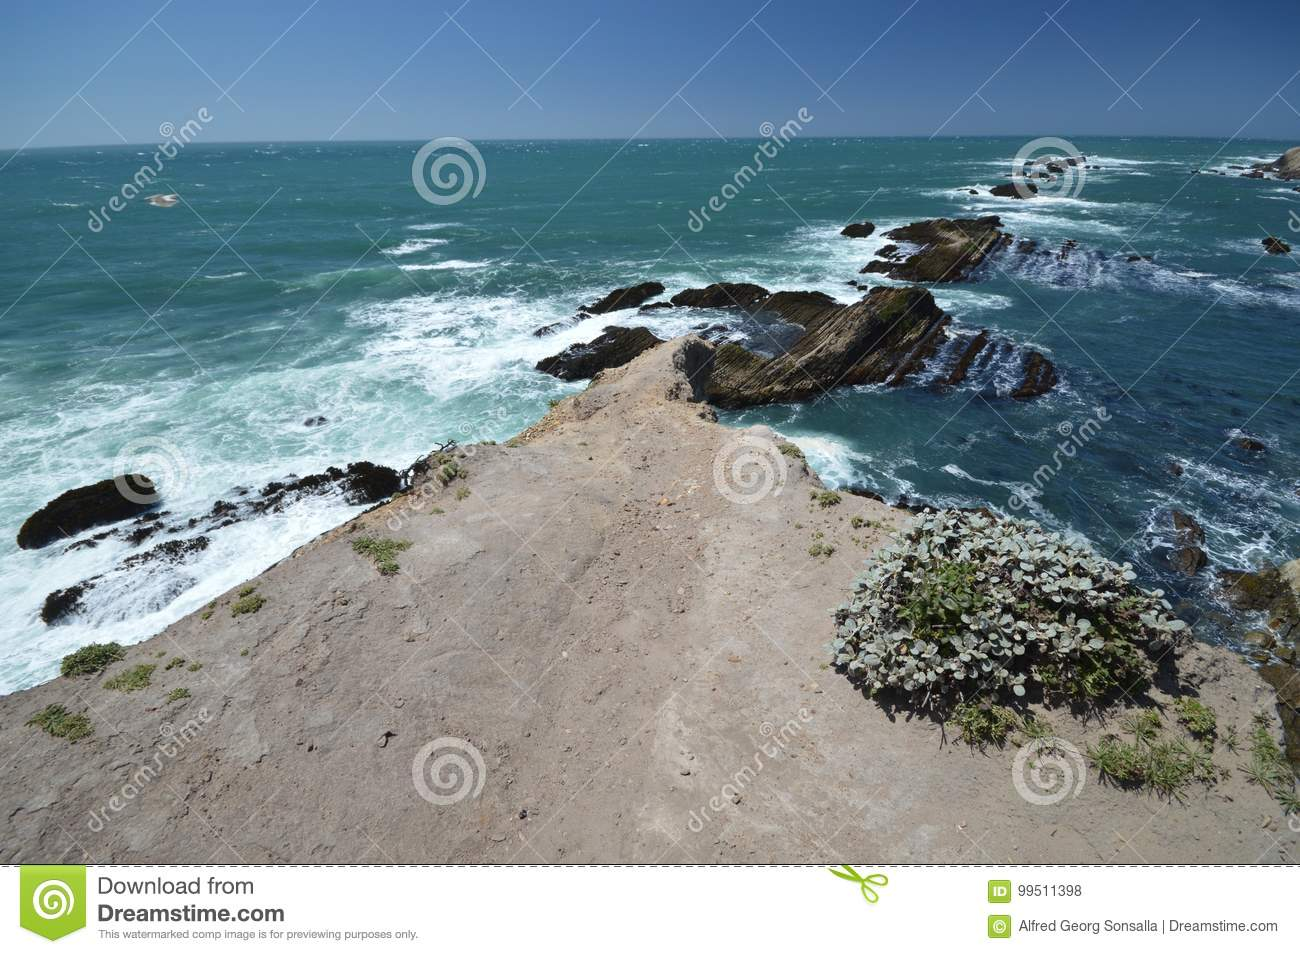 Pacific coasts Impressions of Point Arena Light, California USA